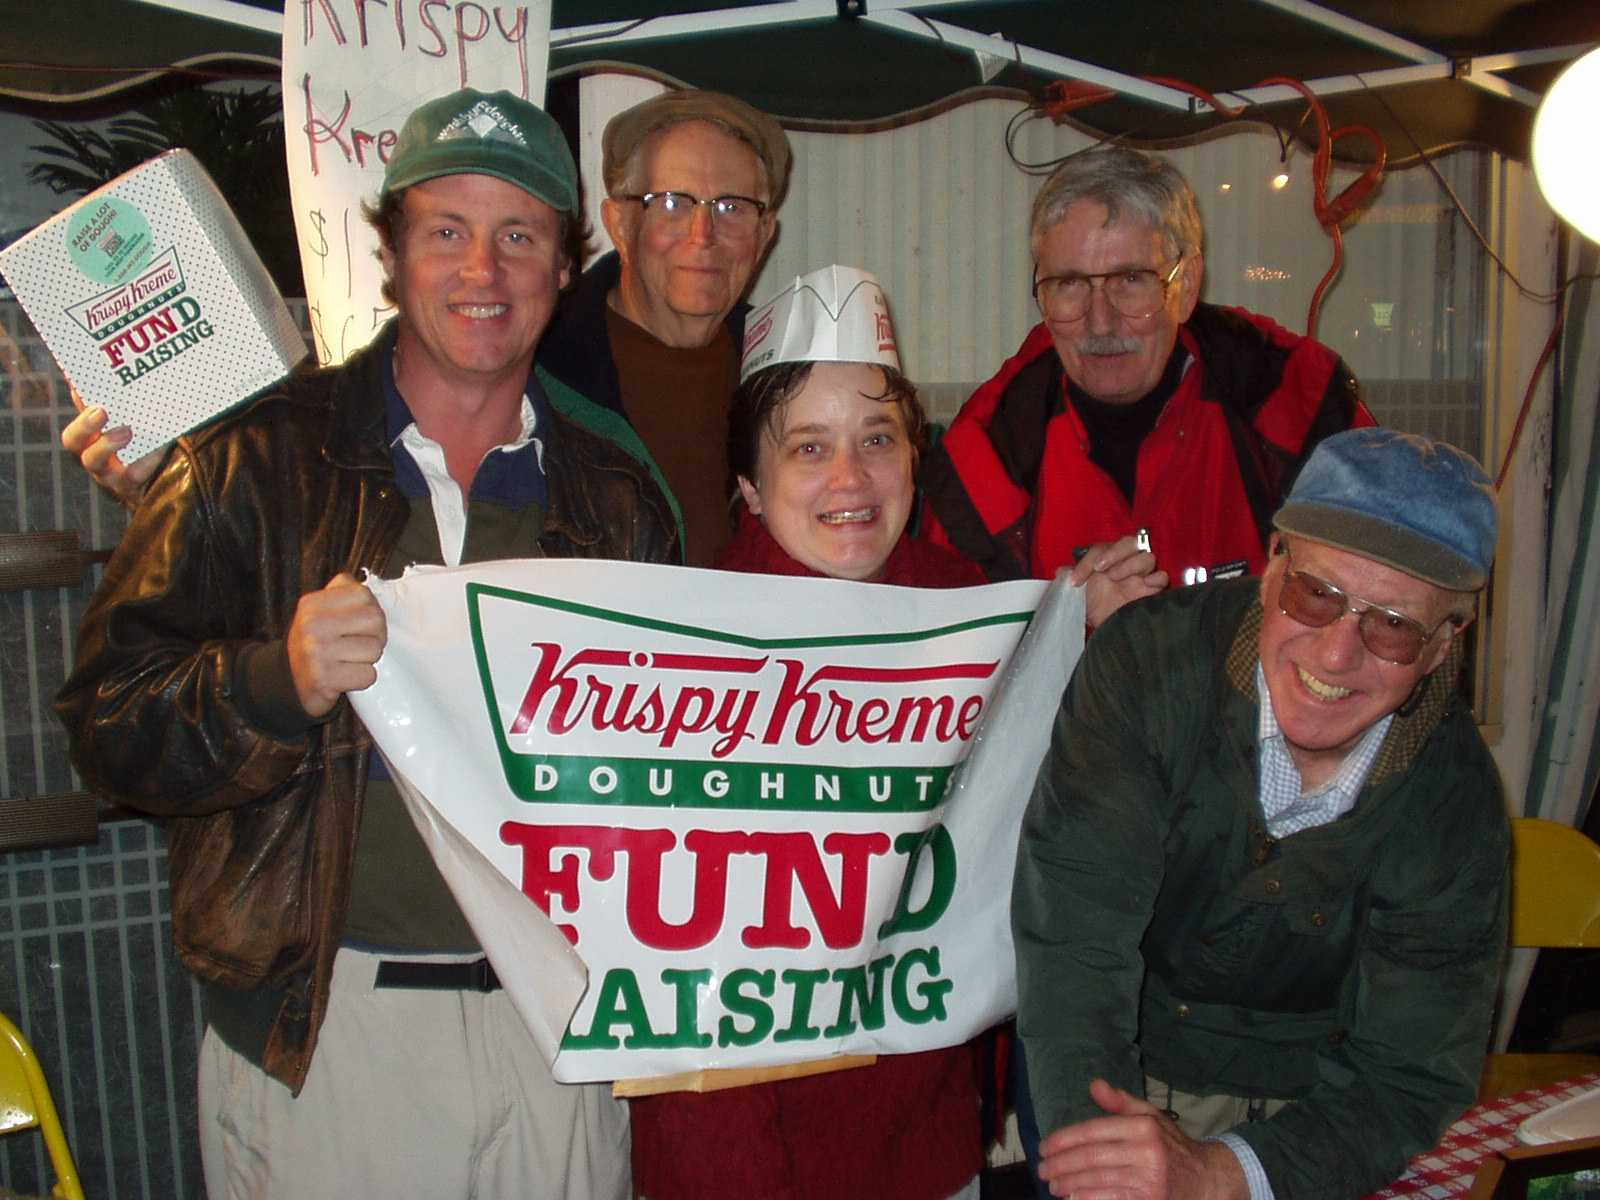 The Crew selling Krispy Kreme Donuts